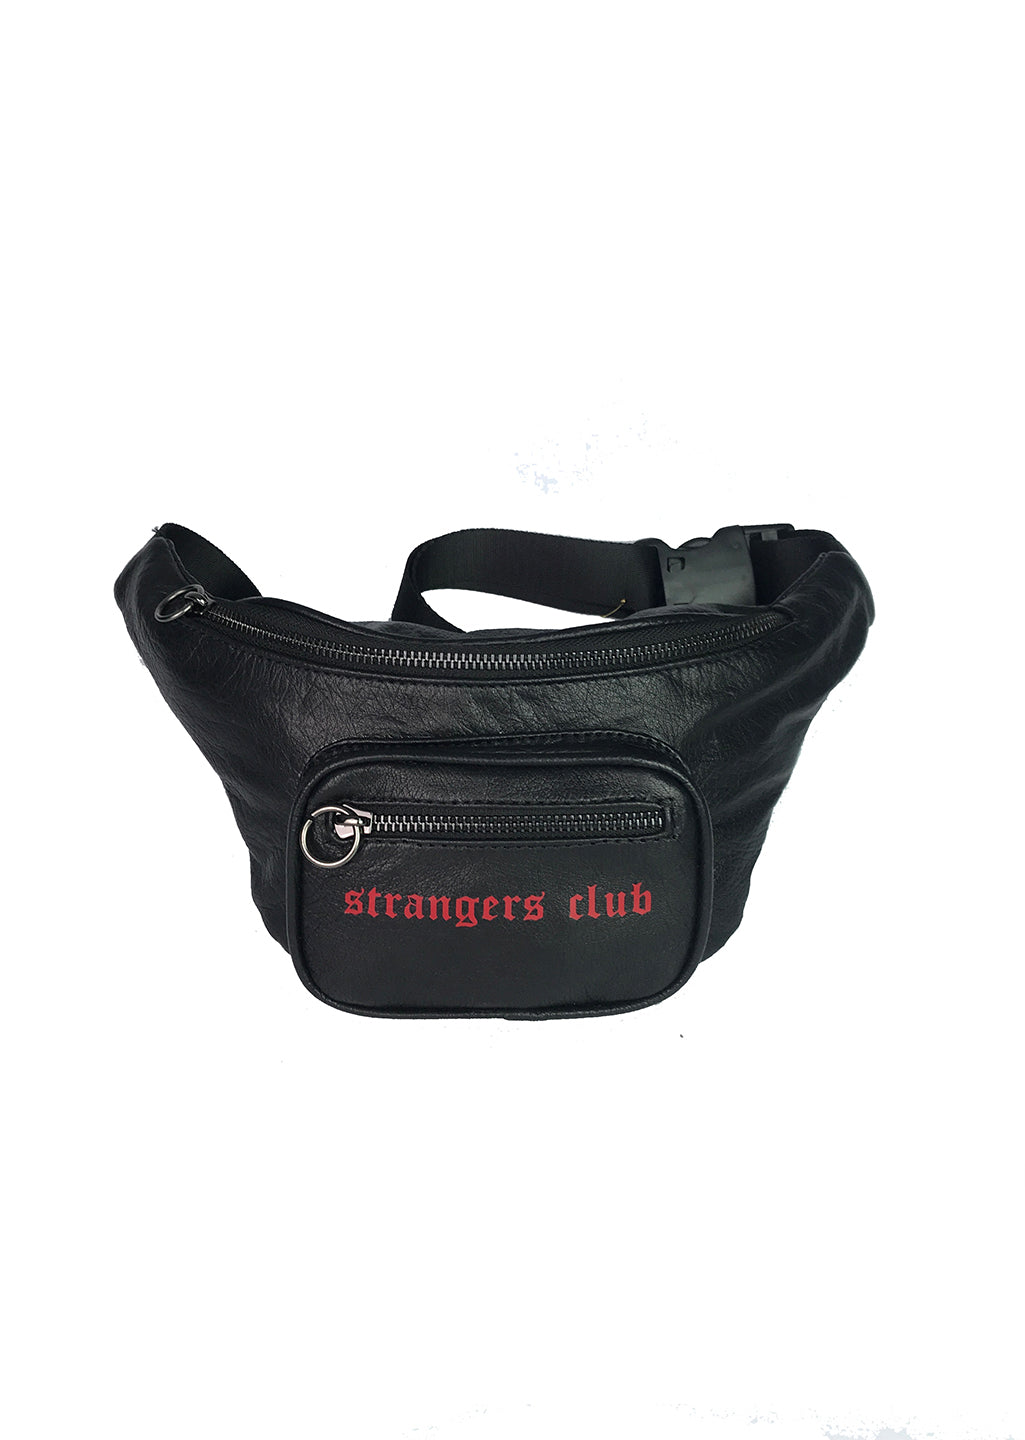 Strangers Club / Leather Belt Bag